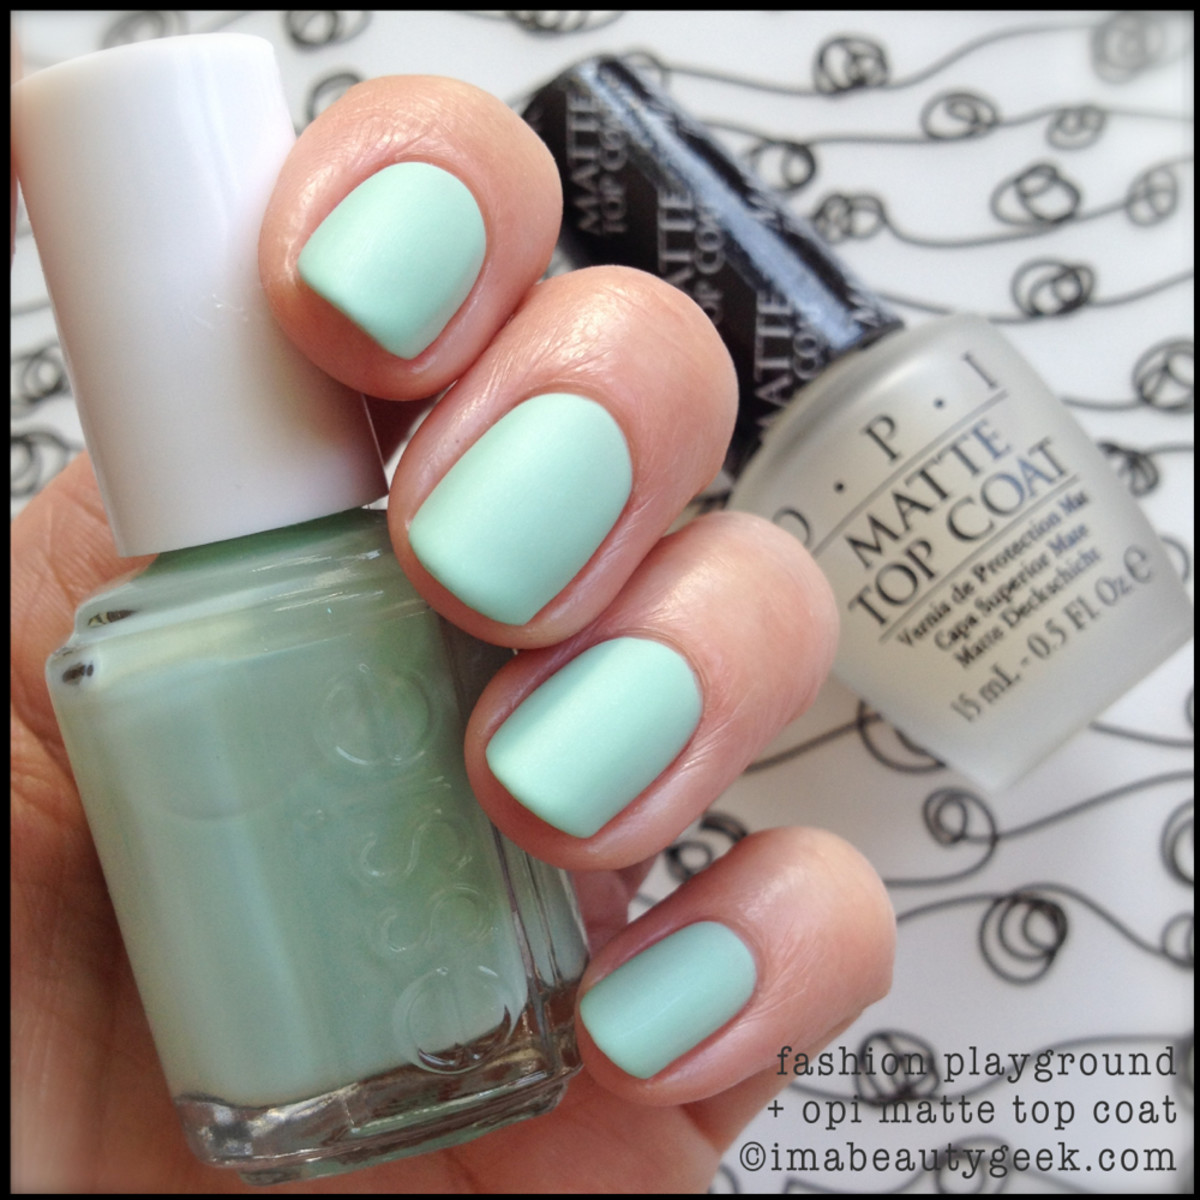 essie fashion playground hide go chic w opi matte top